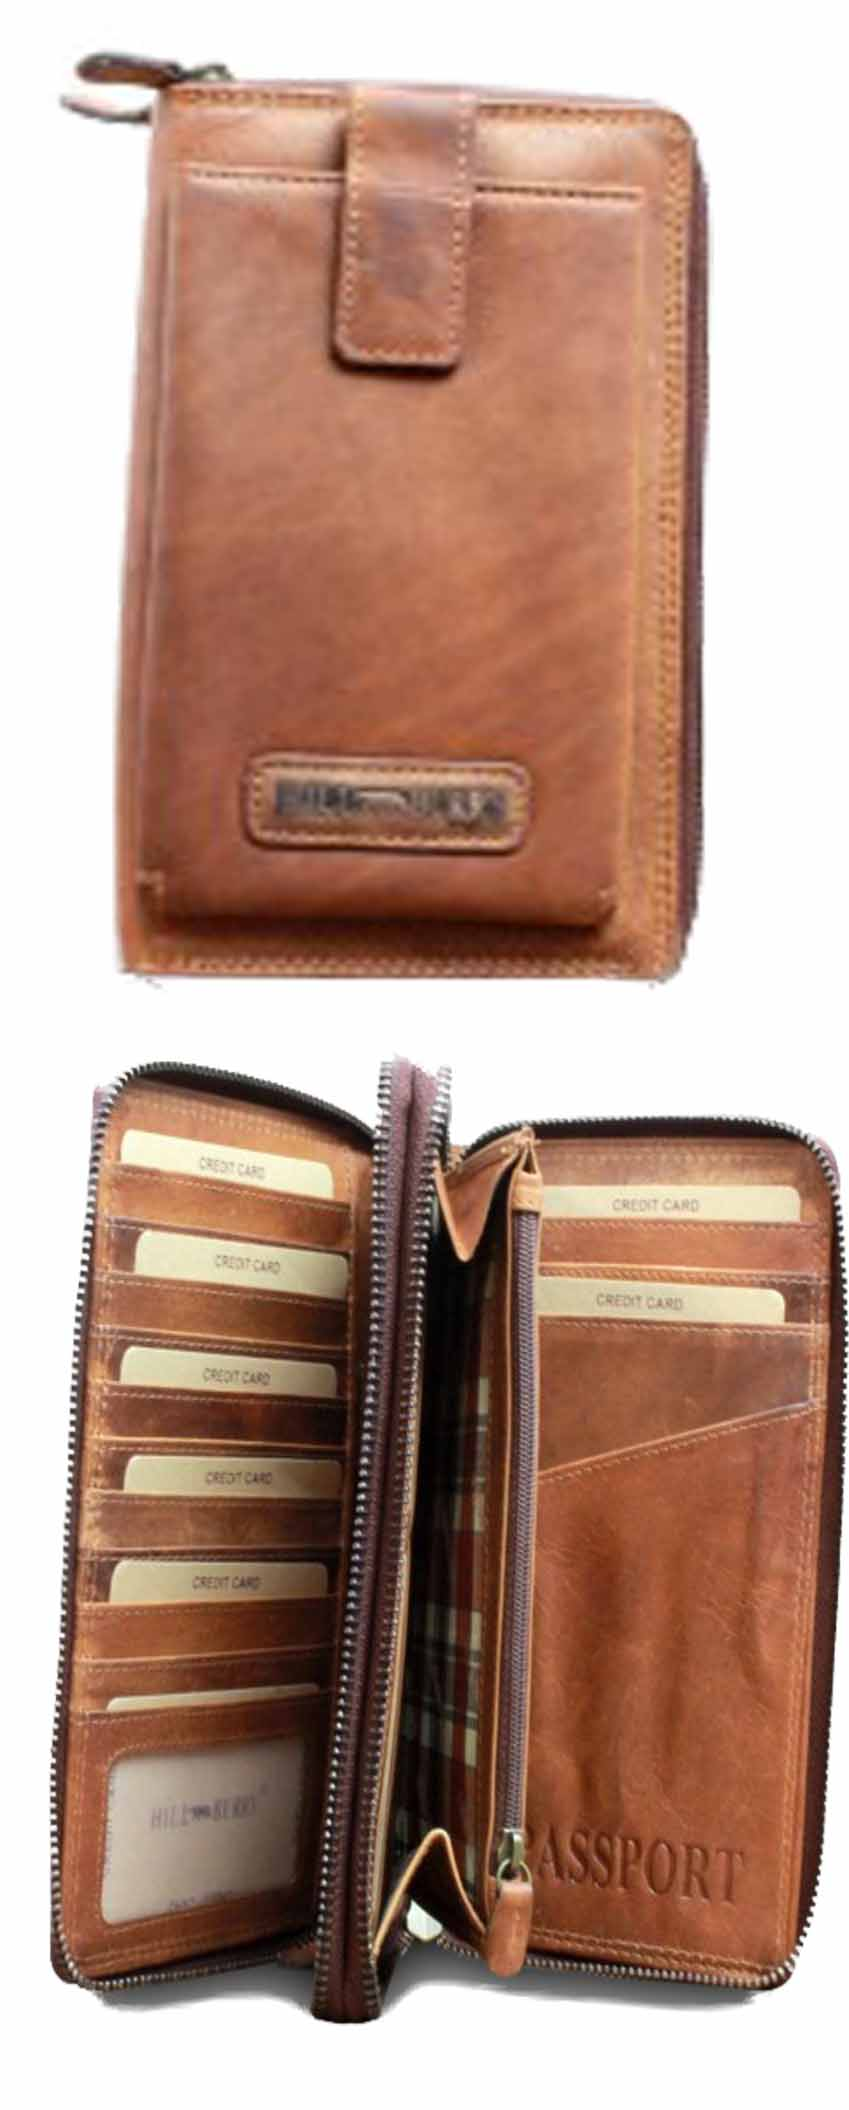 Hillburry Wallet